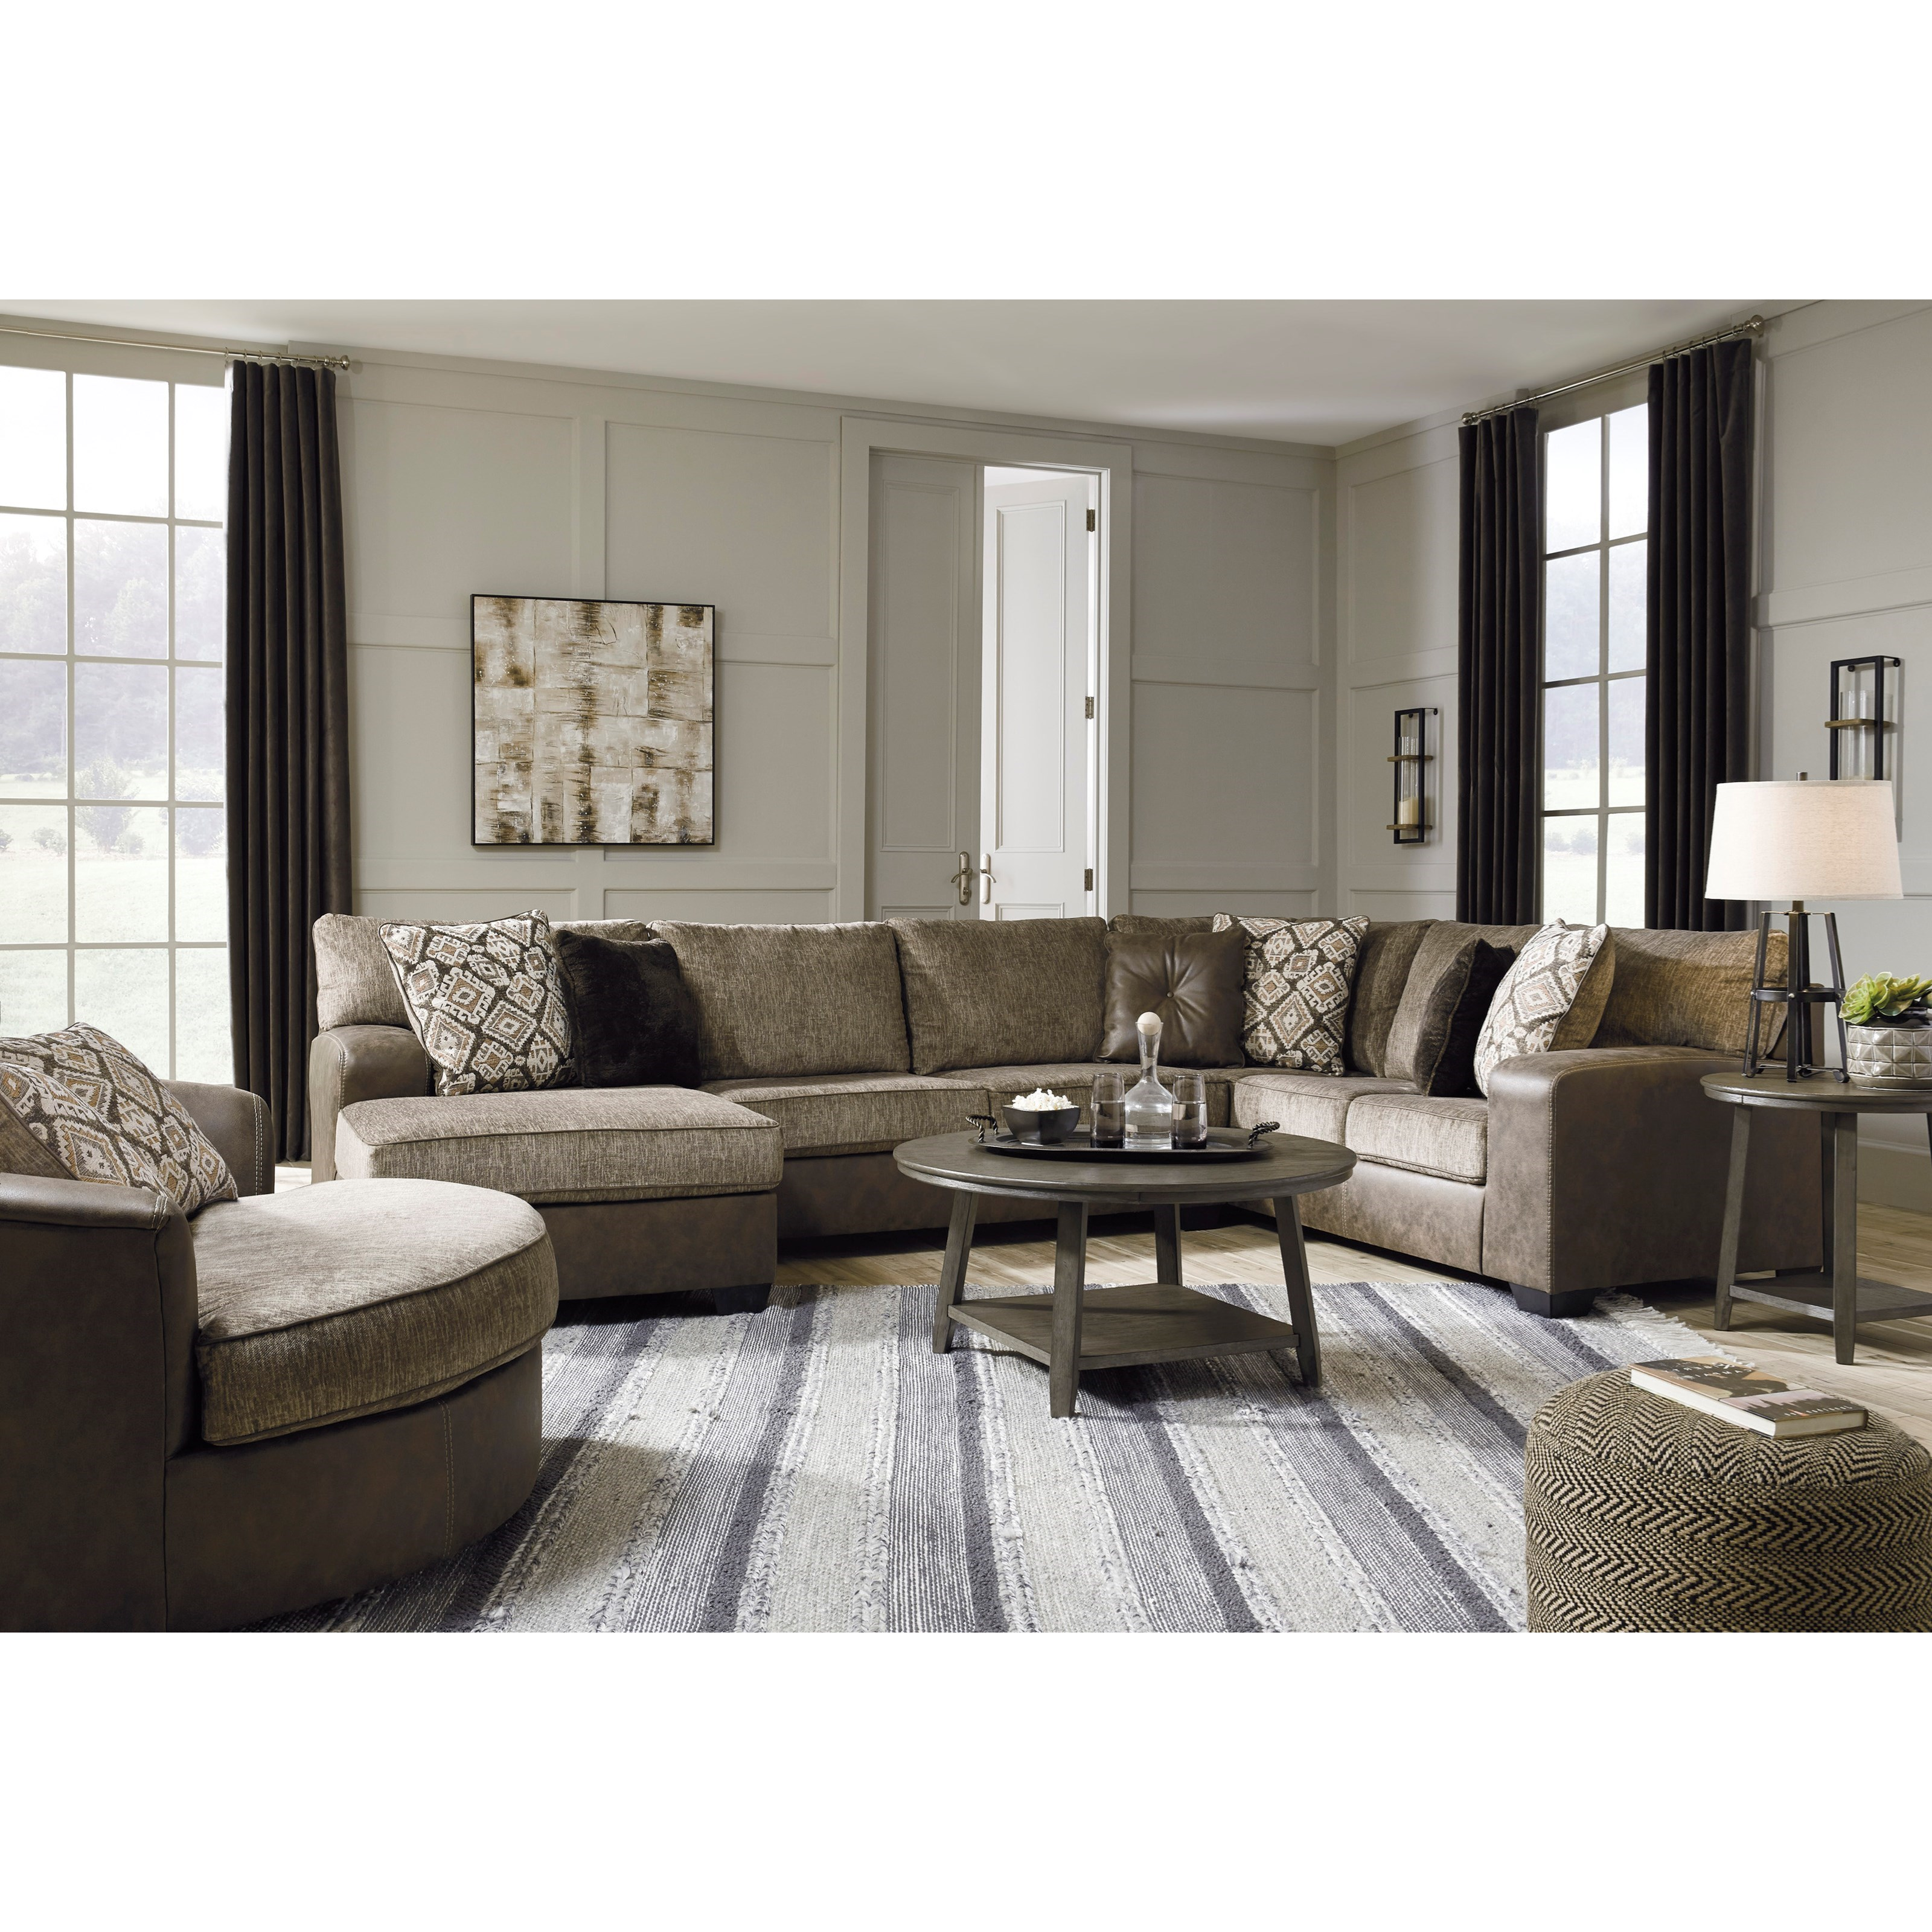 Abalone Living Room Group by Benchcraft at Catalog Outlet